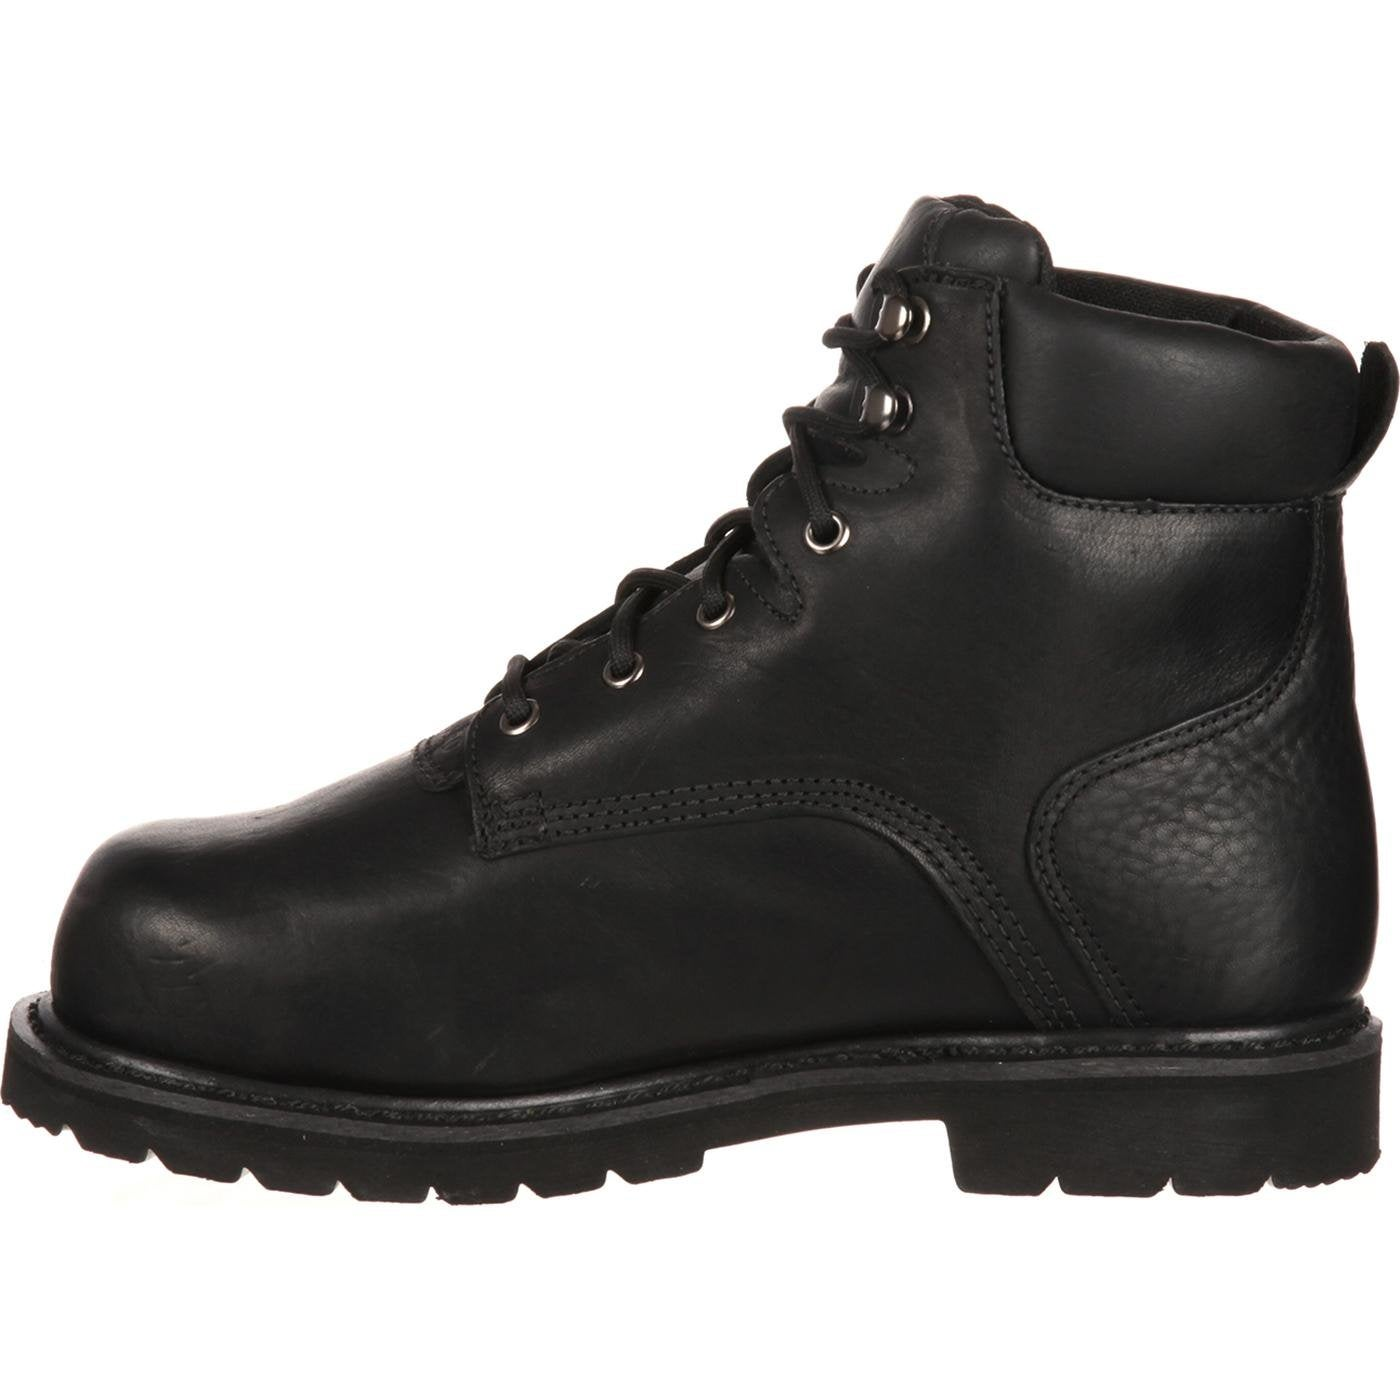 28f0d74db6ea Shop QUICKFIT Collection  Lehigh Safety Shoes Unisex Steel Toe Met Guard Waterproof  Work Boot - On Sale - Free Shipping Today - Overstock - 27165121